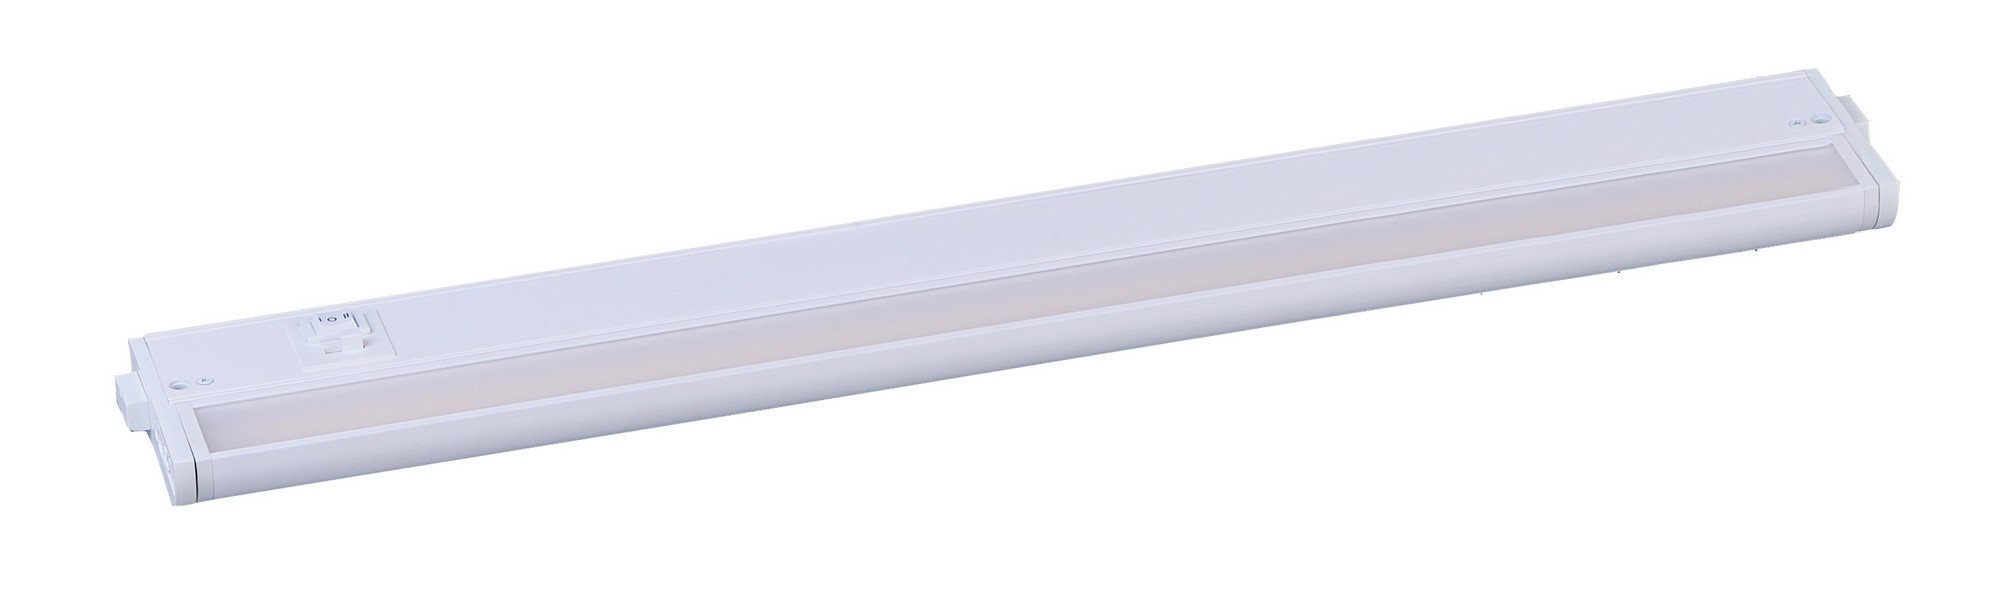 Maxim 89995WT CounterMax MX-L-120-3K 24'' 2700-4000K LED UC, White Finish, Glass, PCB LED Bulb , 60W Max., Dry Safety Rating, Standard Dimmable, Shade Material, Rated Lumens